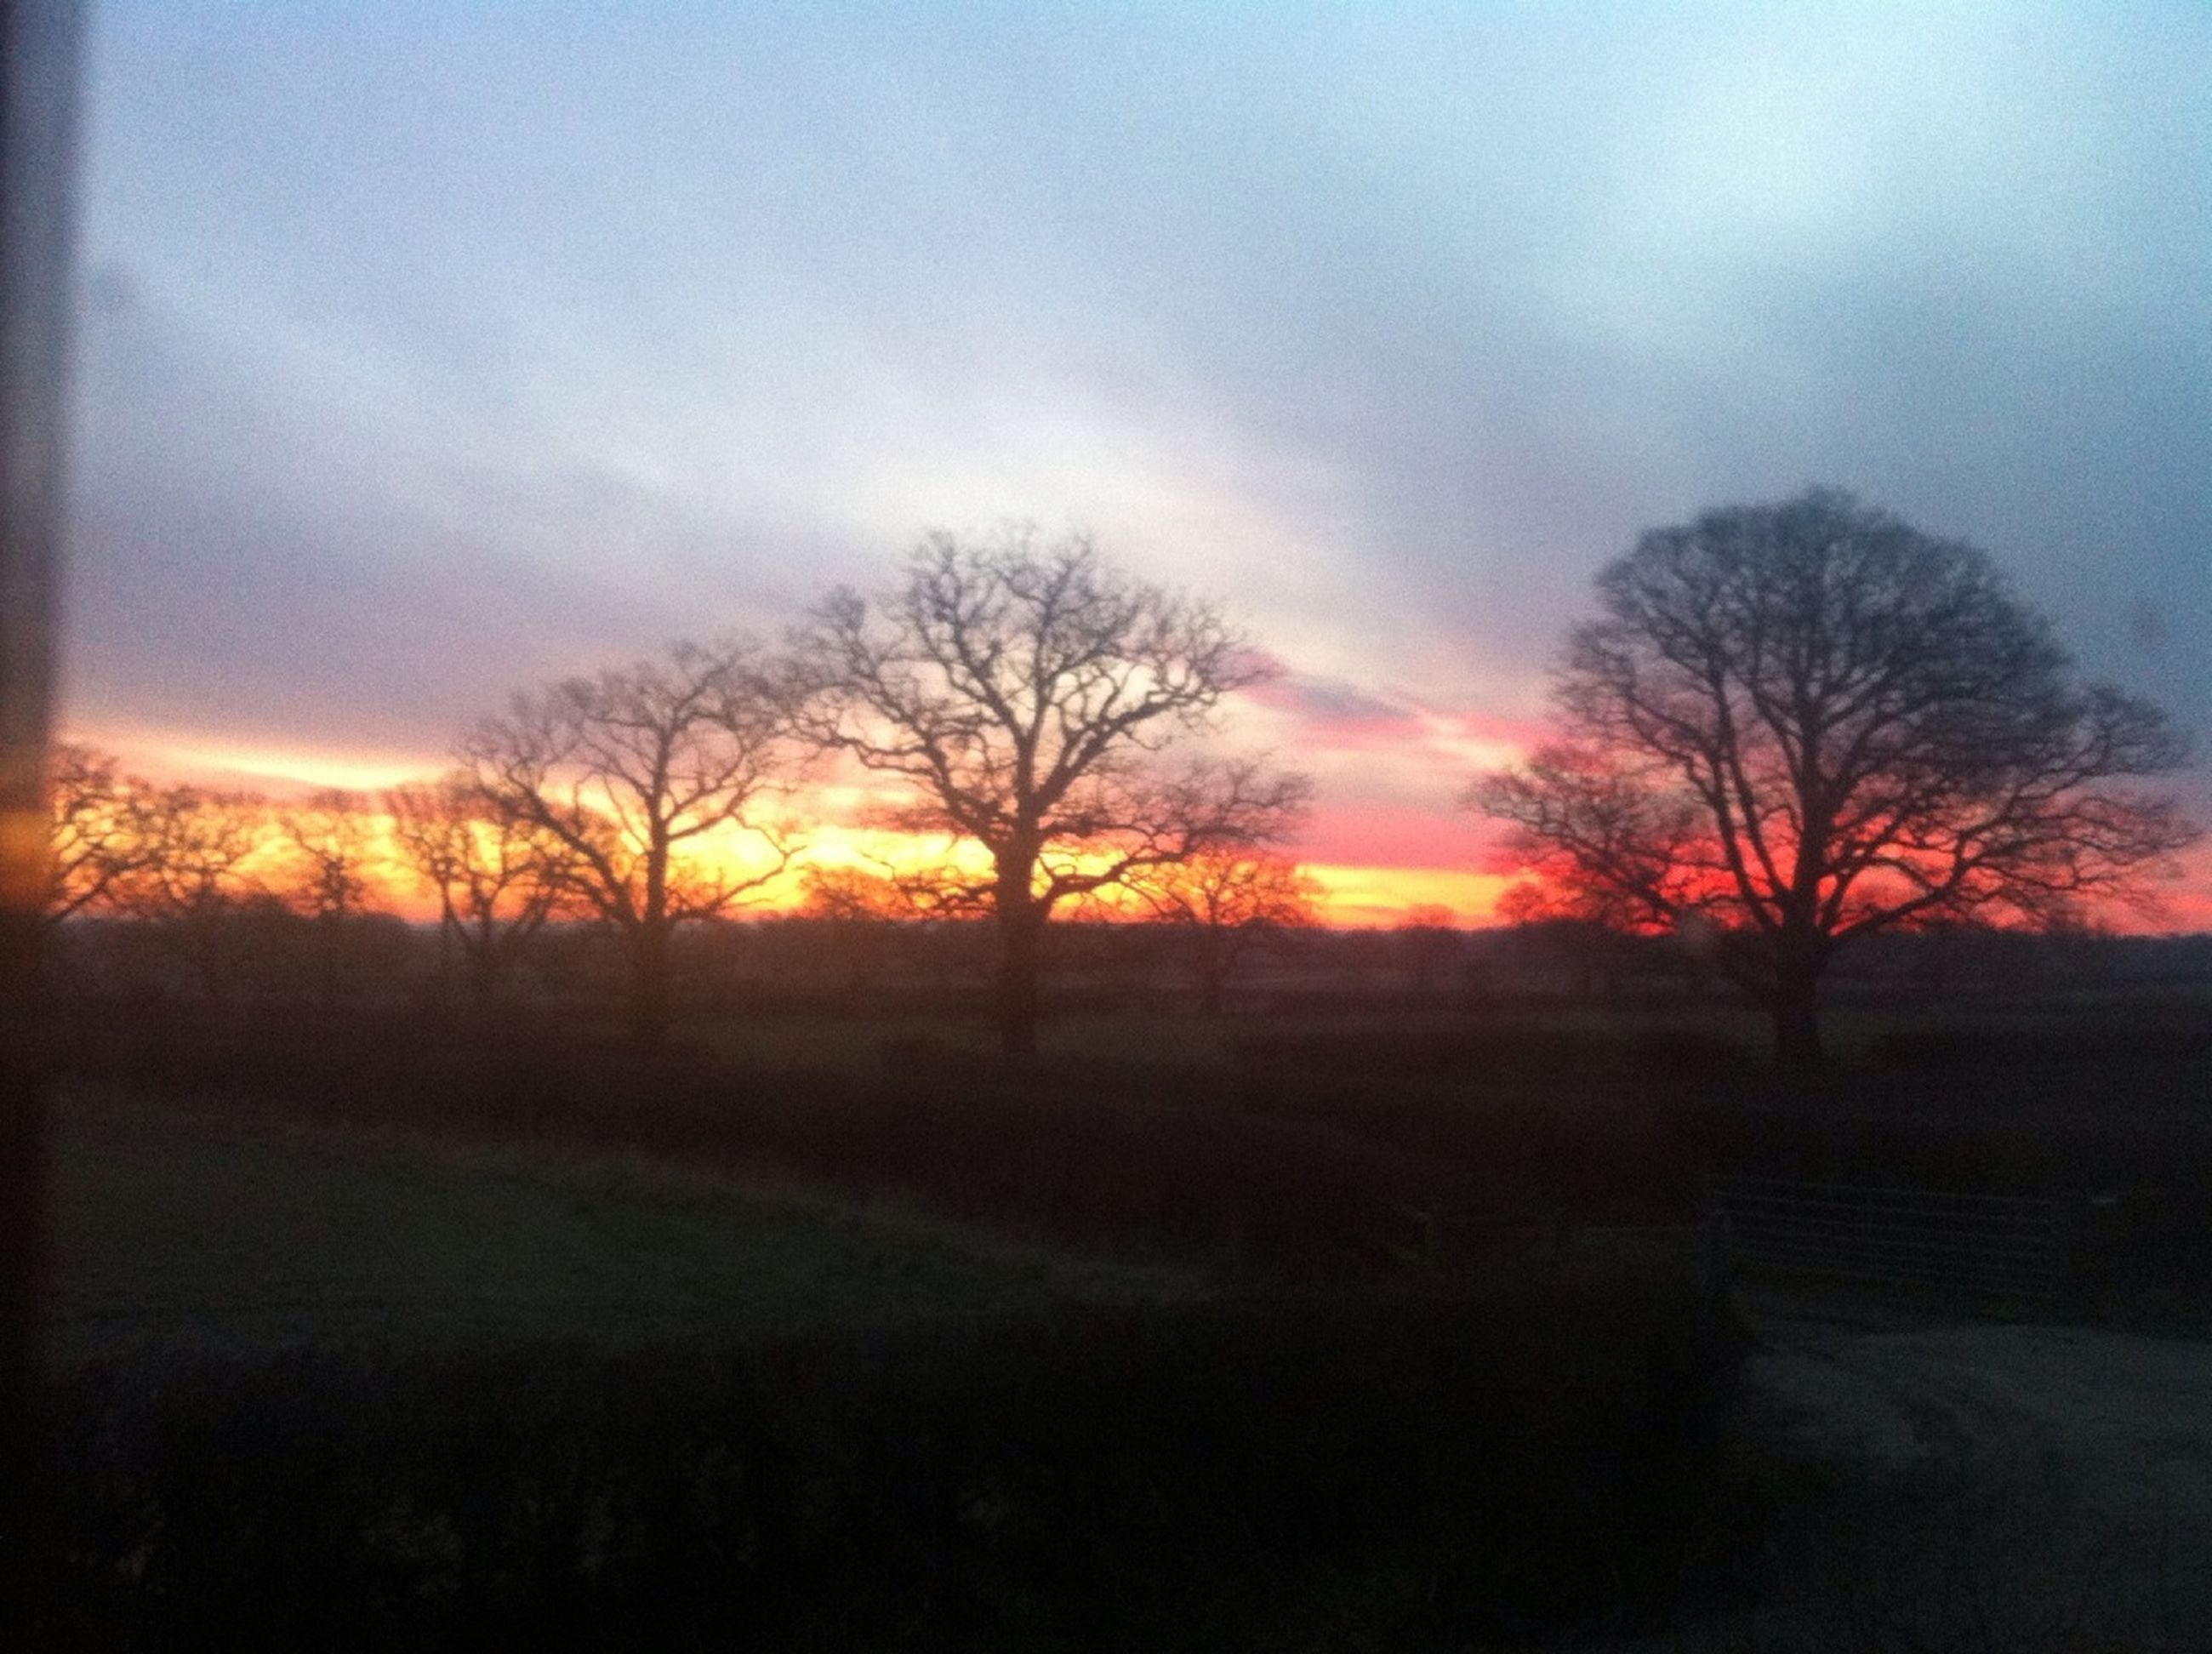 bare tree, sunset, silhouette, tree, tranquility, tranquil scene, sky, landscape, scenics, beauty in nature, branch, nature, field, cloud - sky, dusk, non-urban scene, idyllic, orange color, no people, outdoors